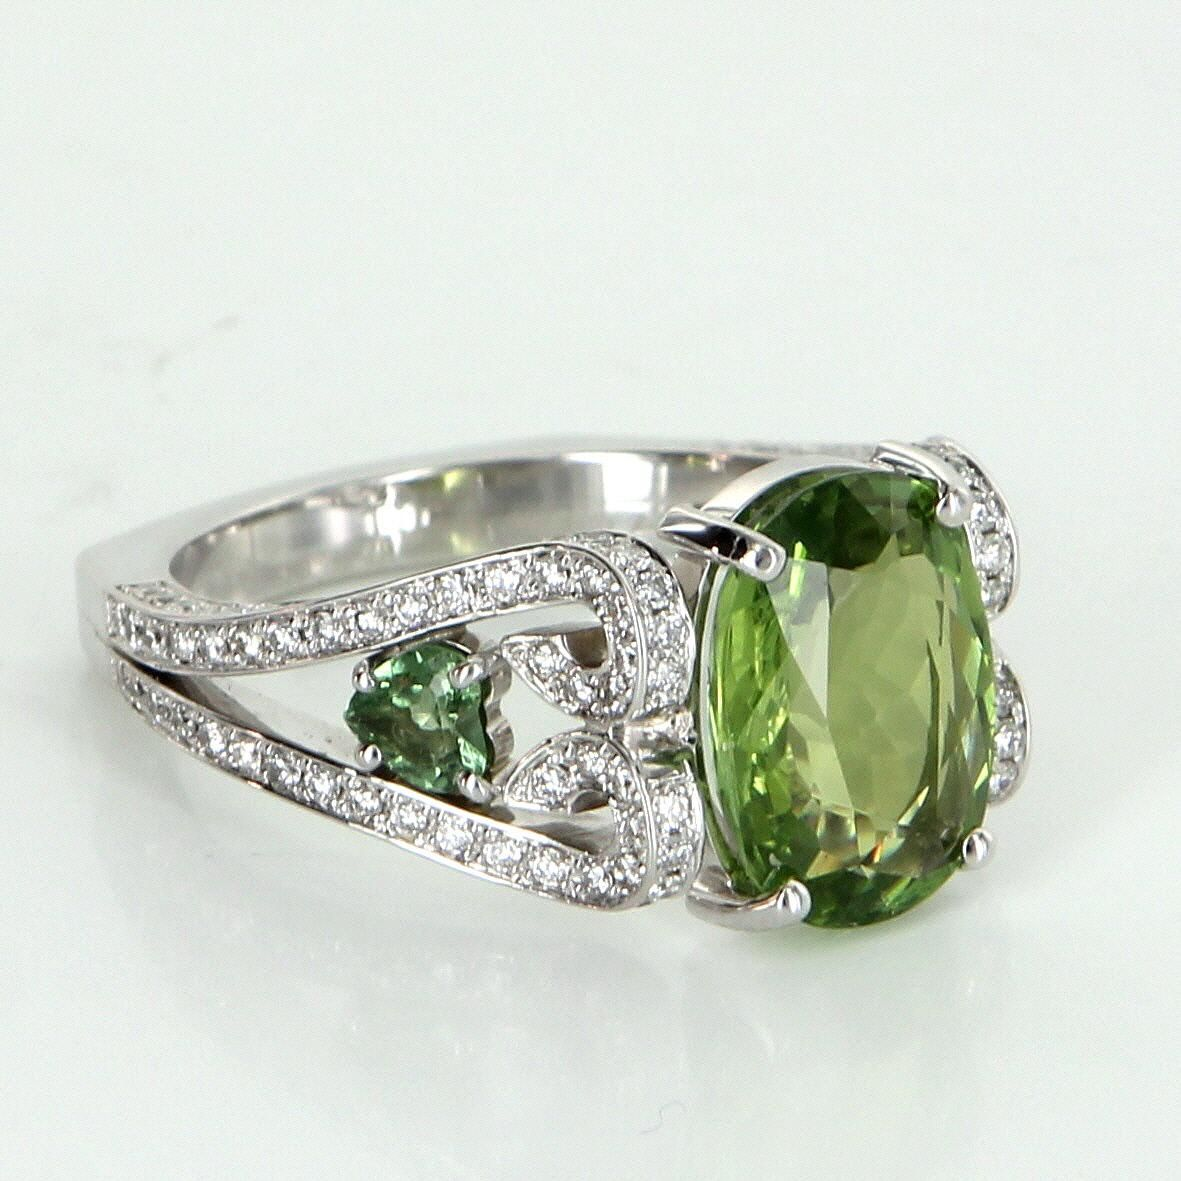 shop collections online with green ring collection gold rings in wedding turtle peridot jewelry yellow